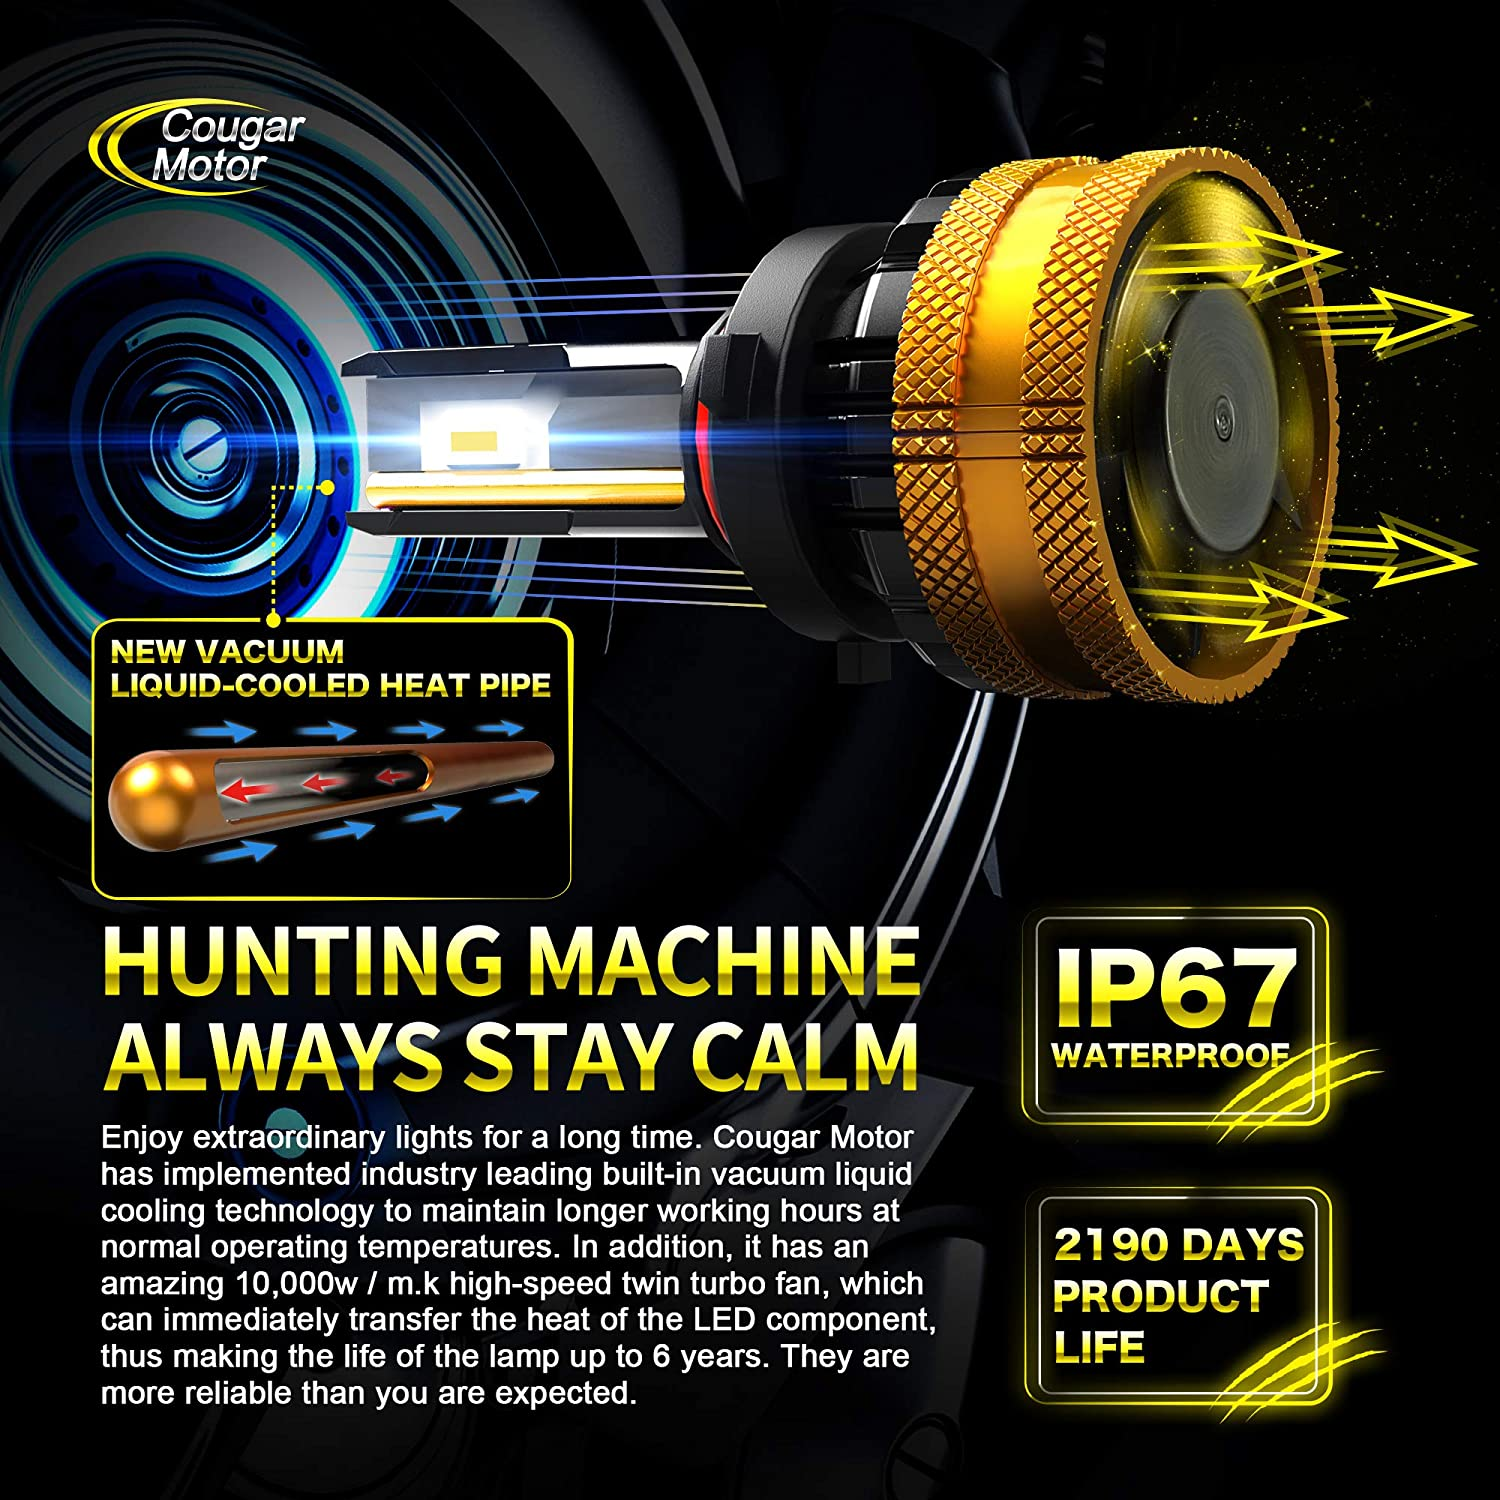 Adjustable Beam Cougar Motor Ultimate 9005 LED Headlight Bulb High-focus HB3 20000LM Extremely Bright 6500K Cool White Conversion Kit